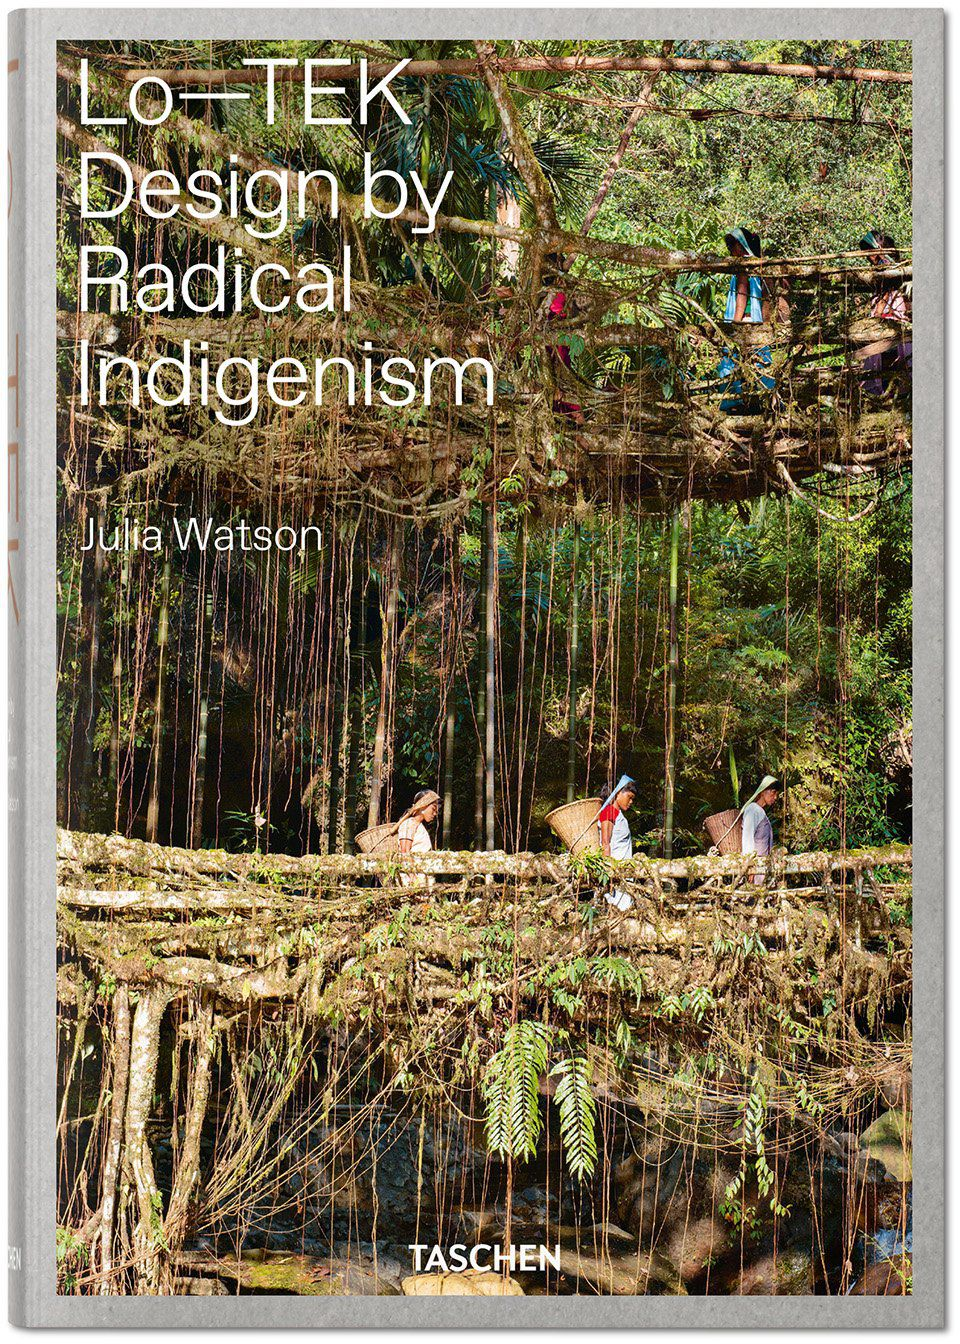 A book cover with an image of three people crossing a living root bridge in India.